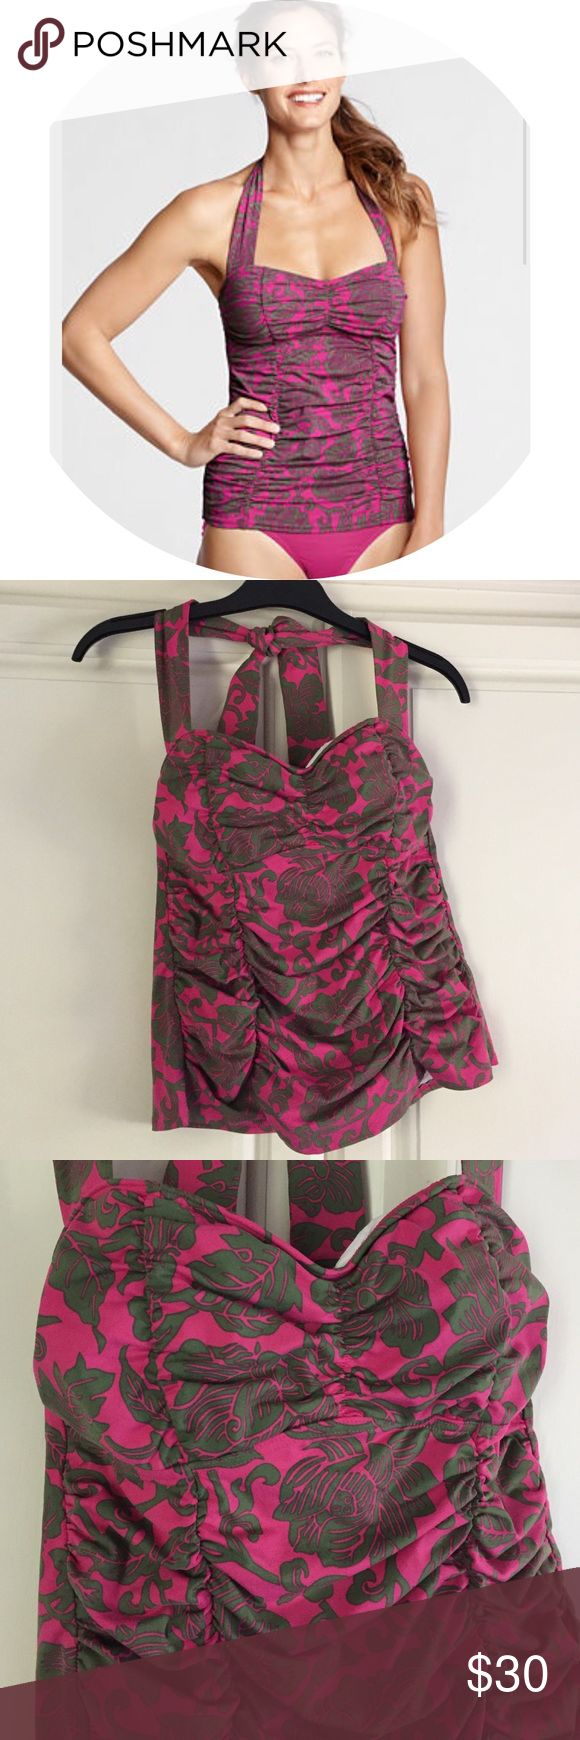 LANDS END Bardot Tankini Top LANDS END Bardot Halter Tankini Top. Size 6P. Pink with a green flower pattern. Sown in soft cups. Halter strap is a tie so it's adjustable. Gathers on the side and the middle are very minimizing. Only worn a few times! Lands' End Swim